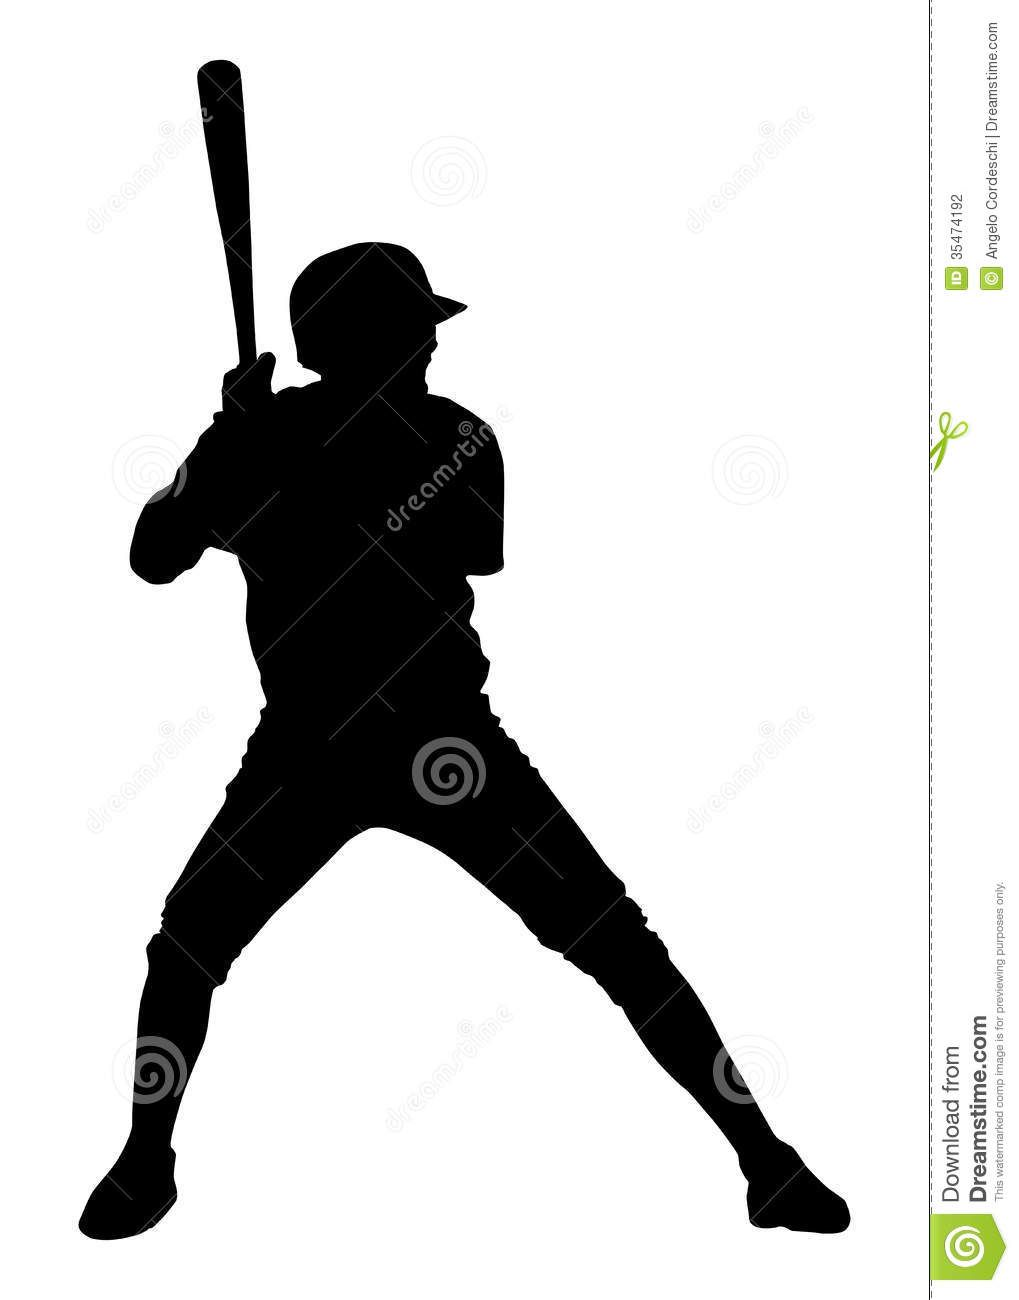 free clipart baseball player silhouette - photo #24